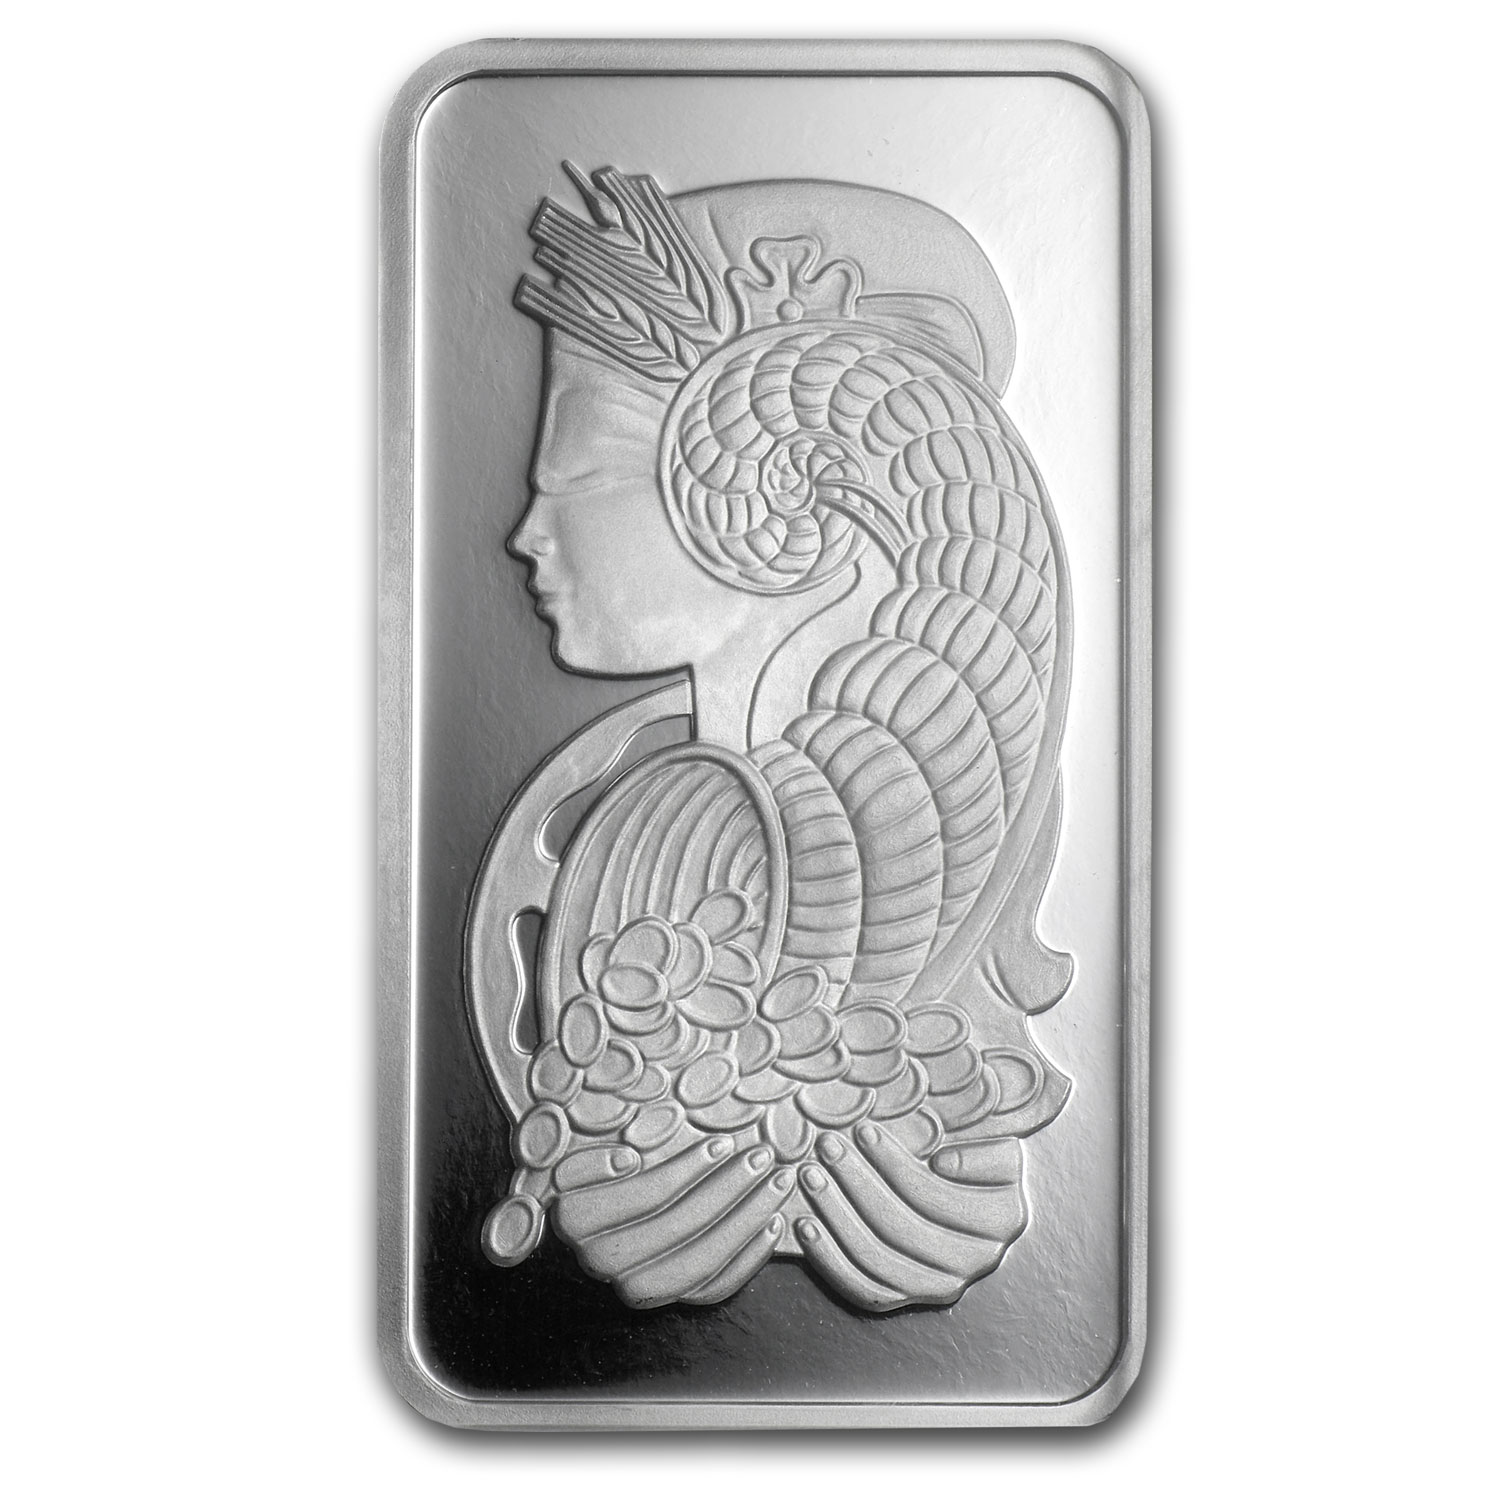 50 gram Silver Bar - Secondary Market